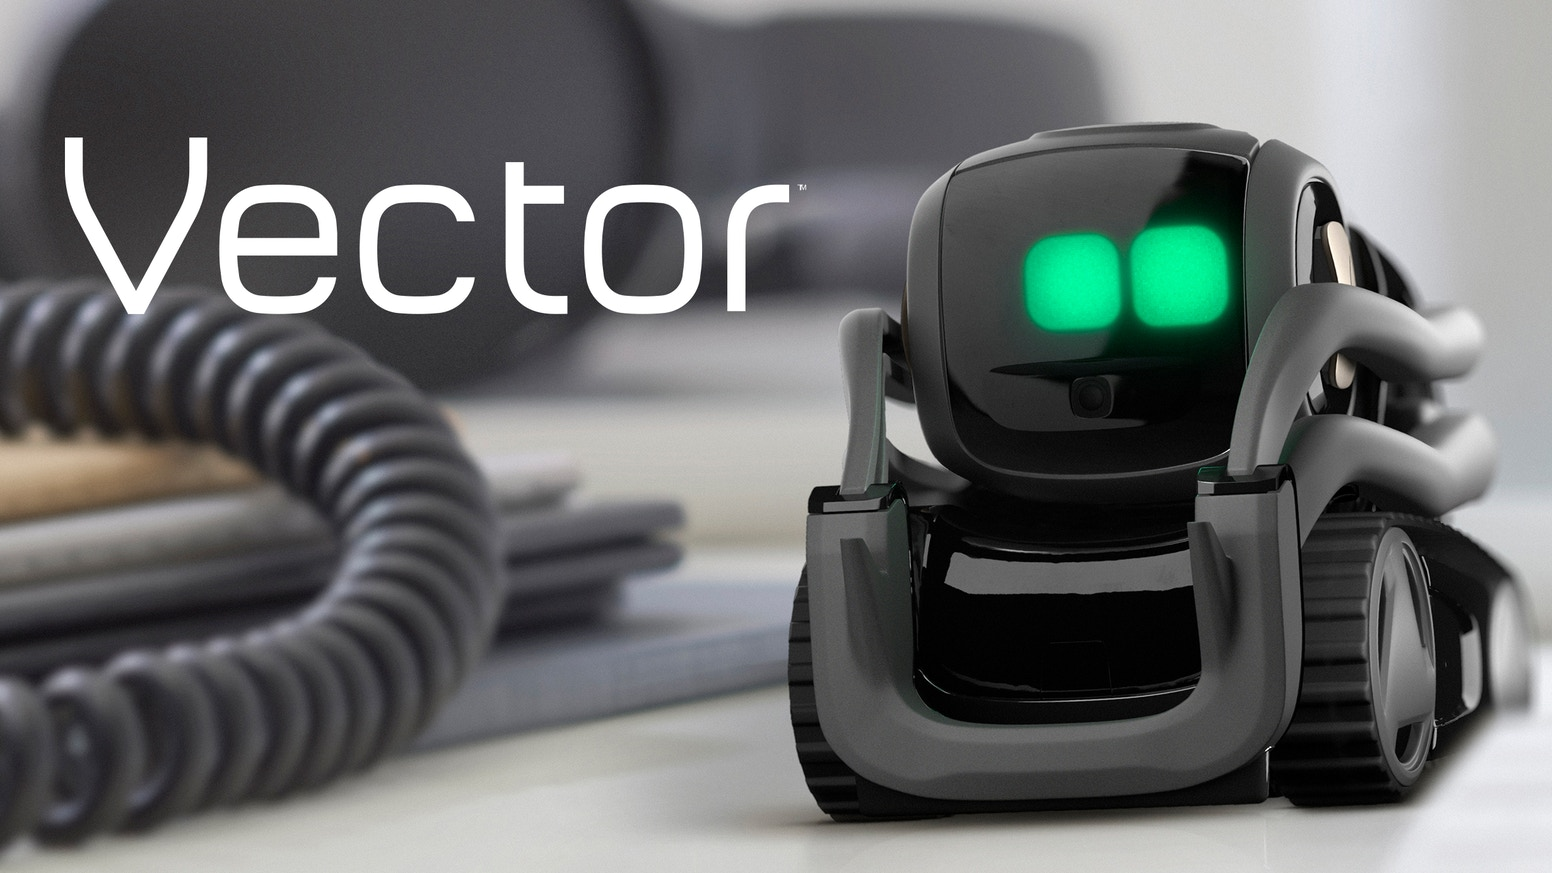 Vector is the answer to our sci-fi dreams. He's a home robot who's always on, happy to see you, voice-enabled, and eager to help.